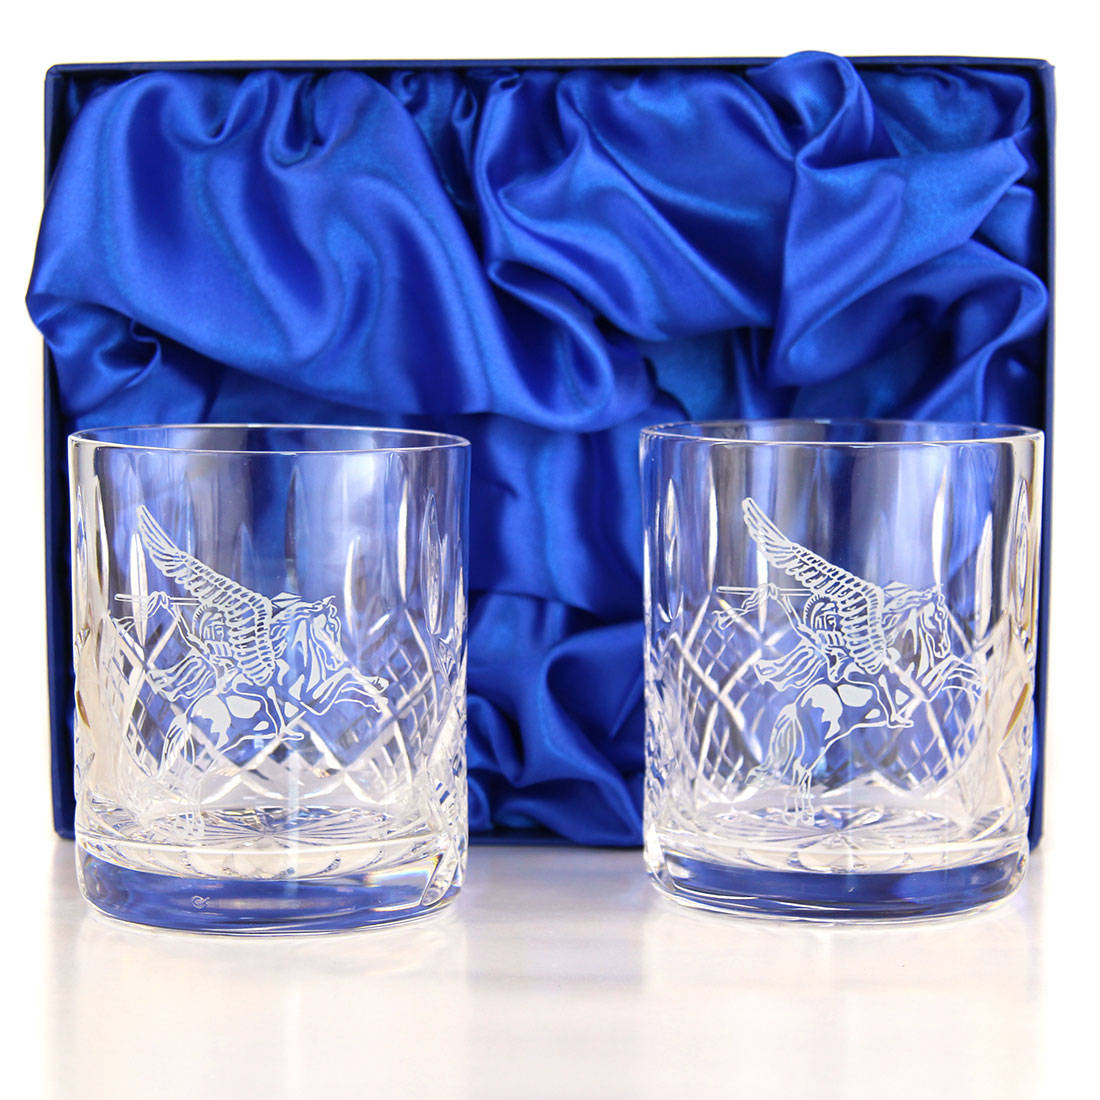 Panel Cut Whisky Glasses (Pair) in Presentation Box